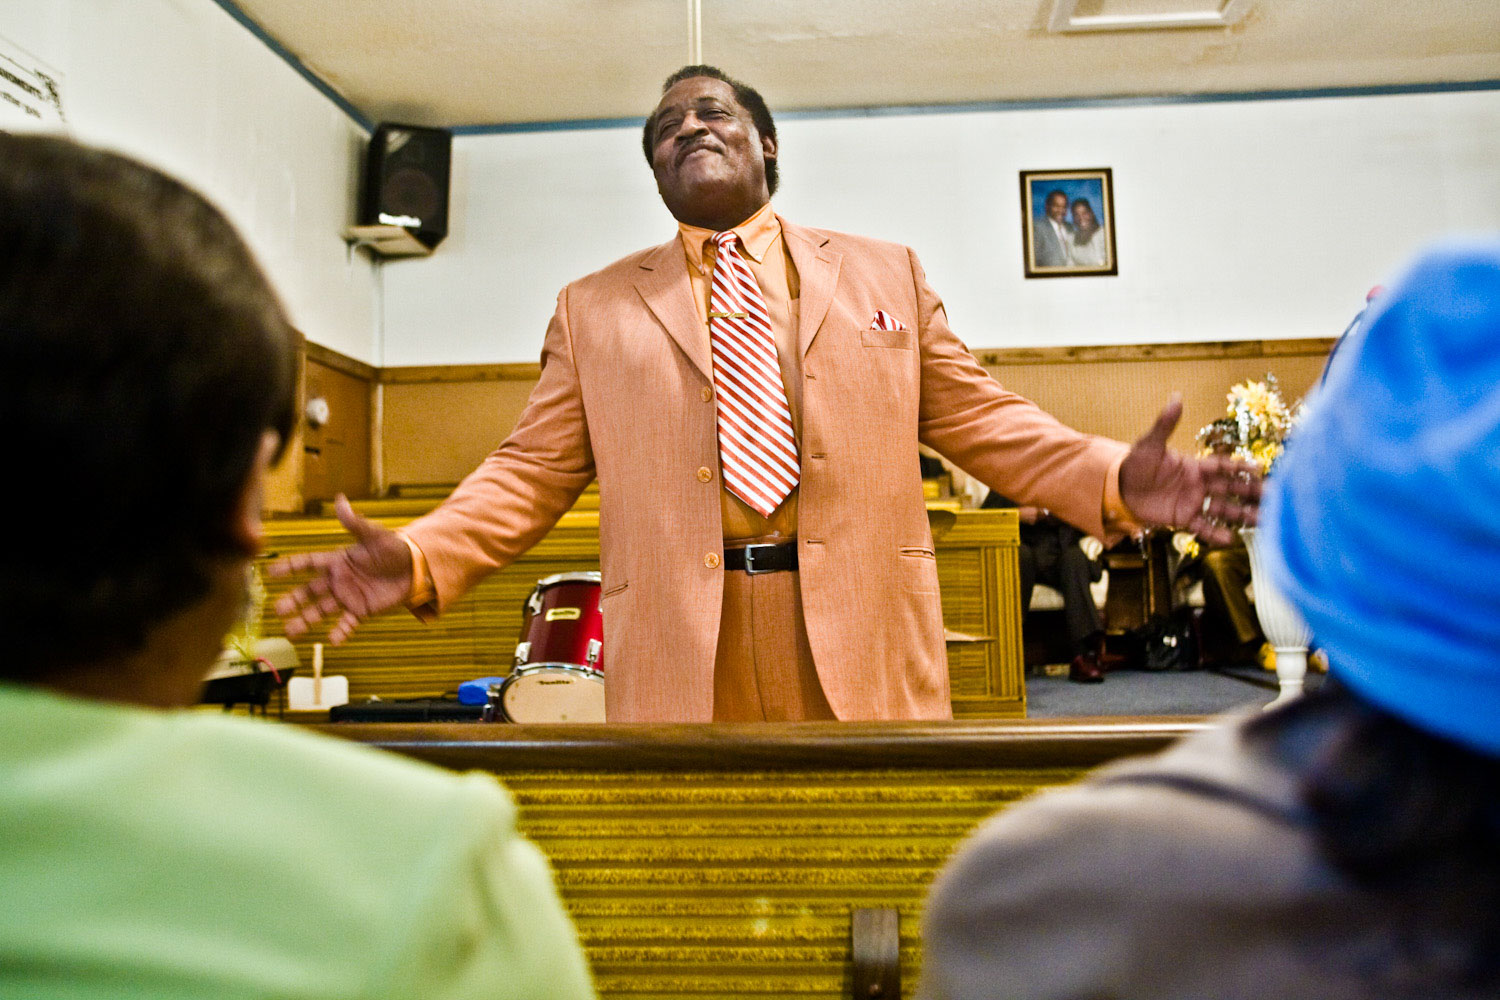 Lifeline Community Church Paster Robert Weaver standing in front of congregation